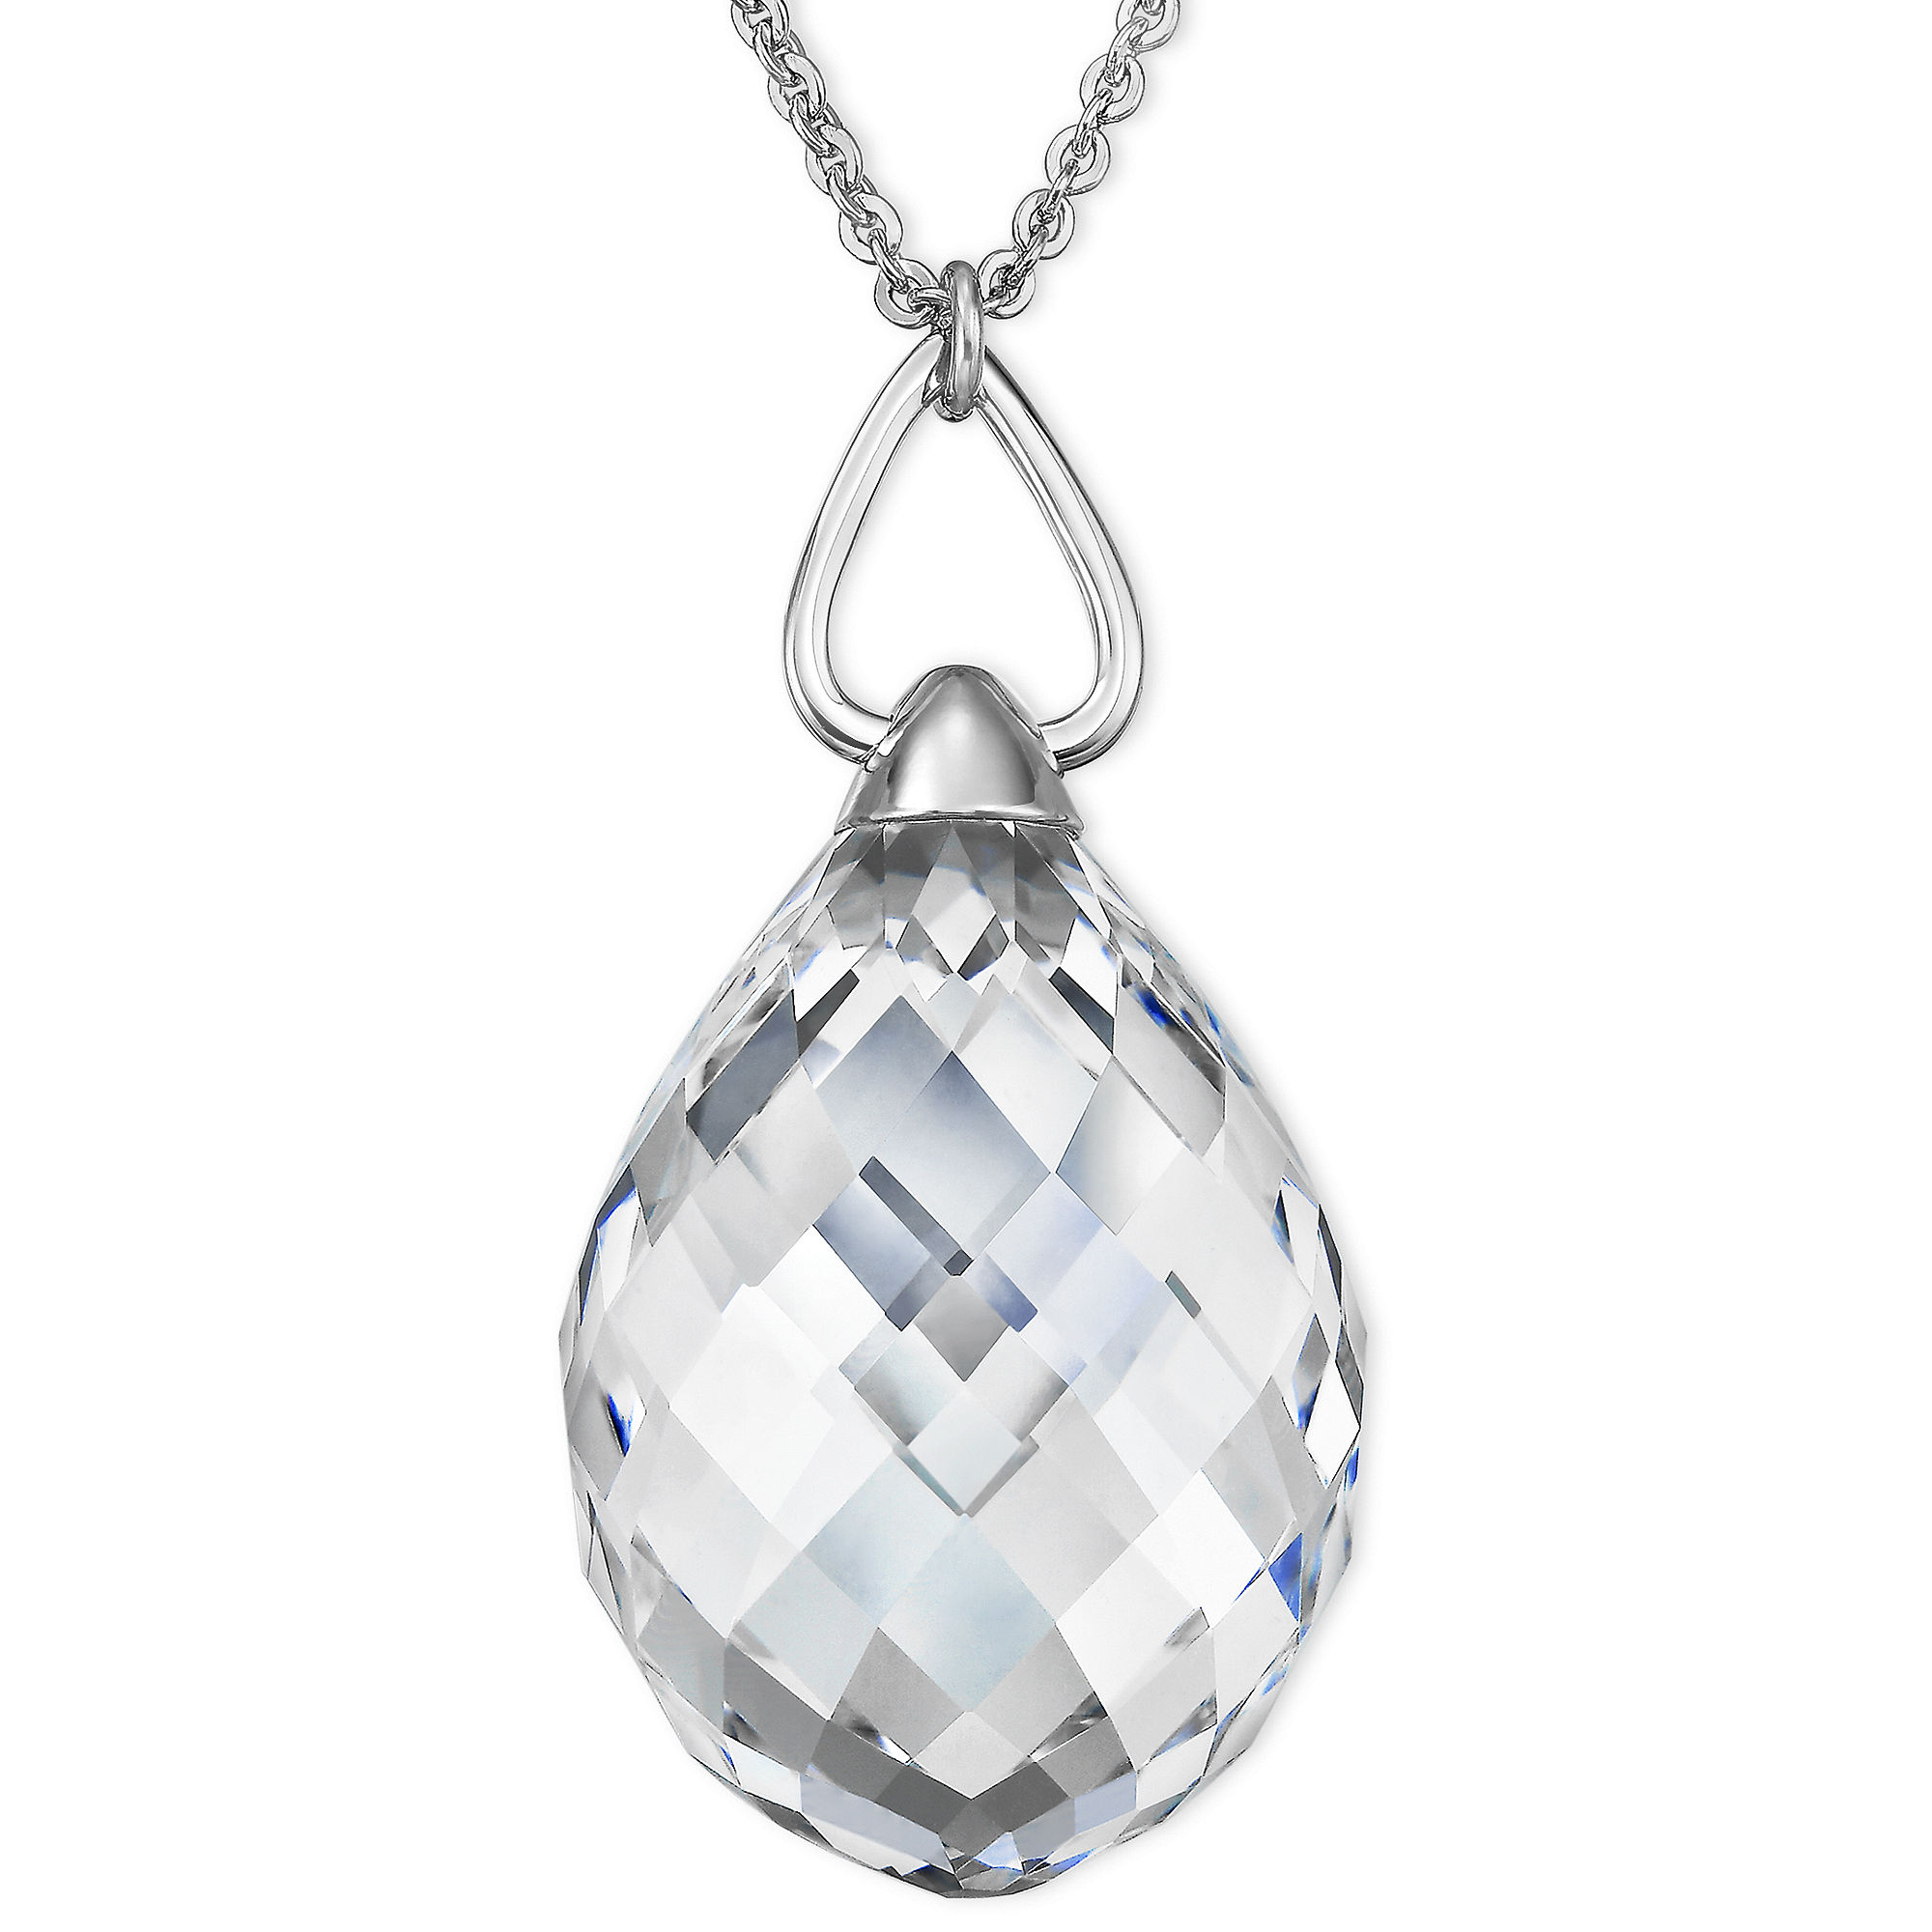 Lyst swarovski rhodiumplated crystal teardrop pendant necklace in gallery aloadofball Gallery